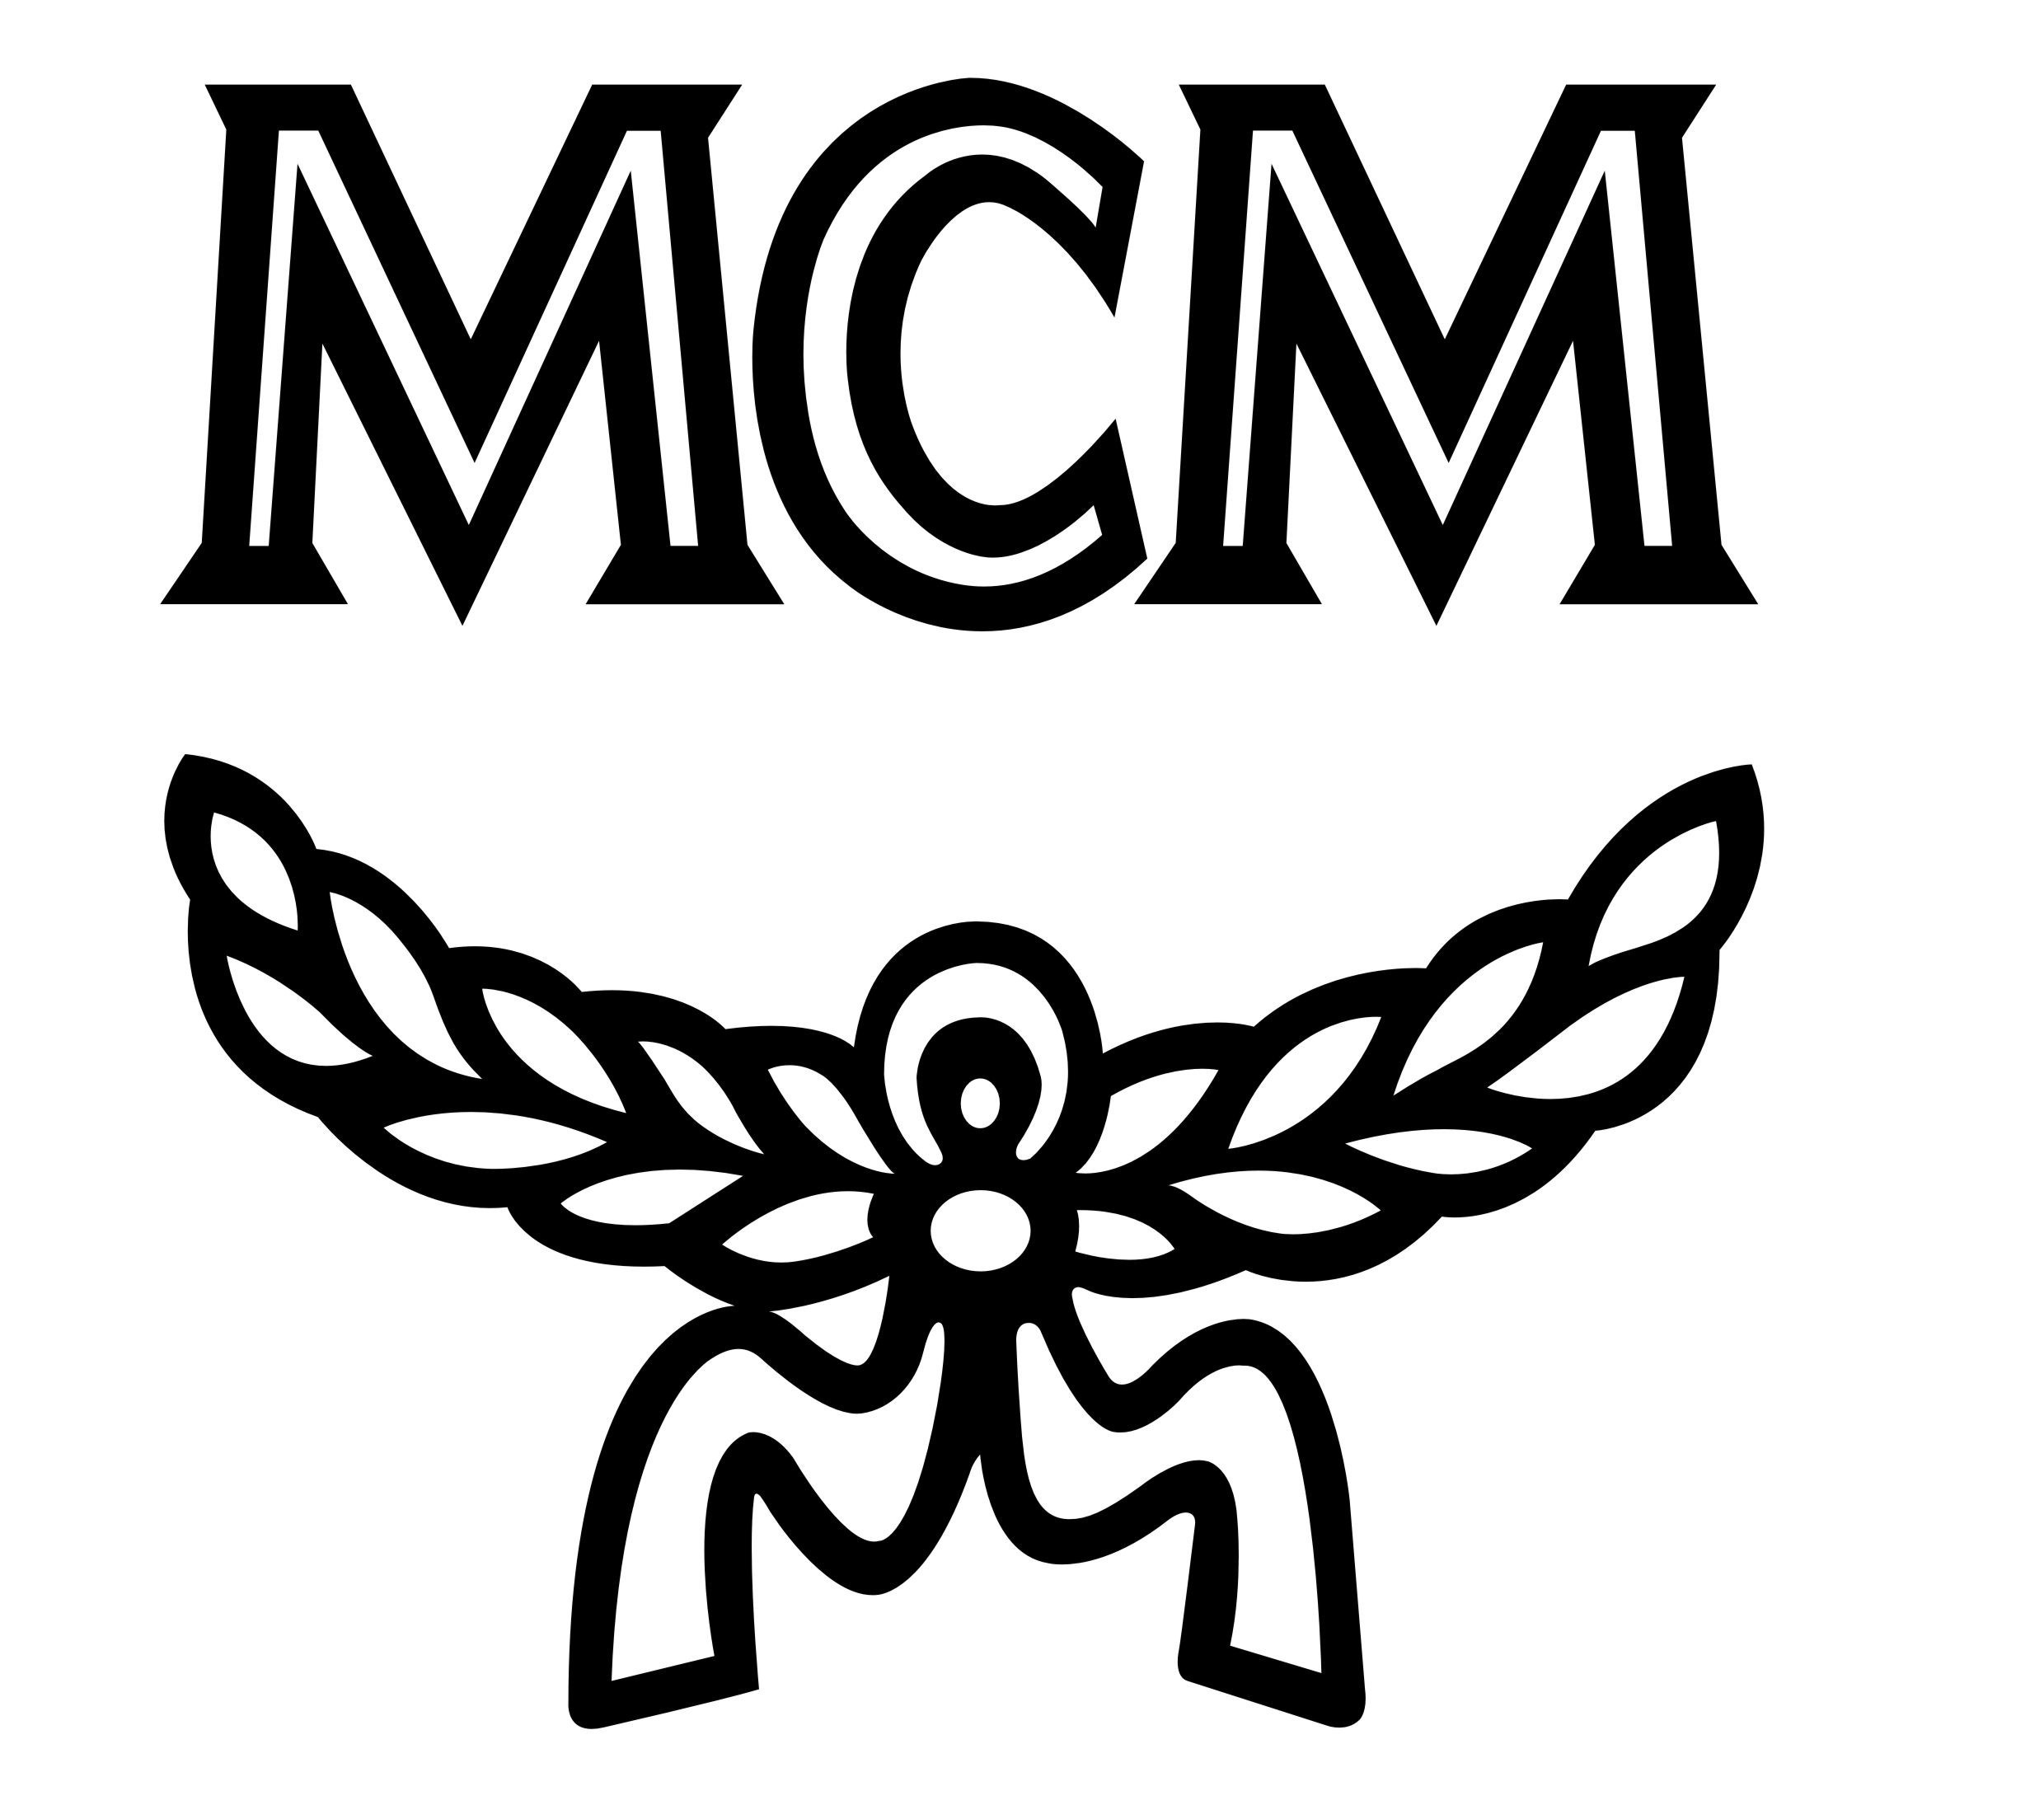 MCM Celebrates its Heritage by Showcasing The New and The